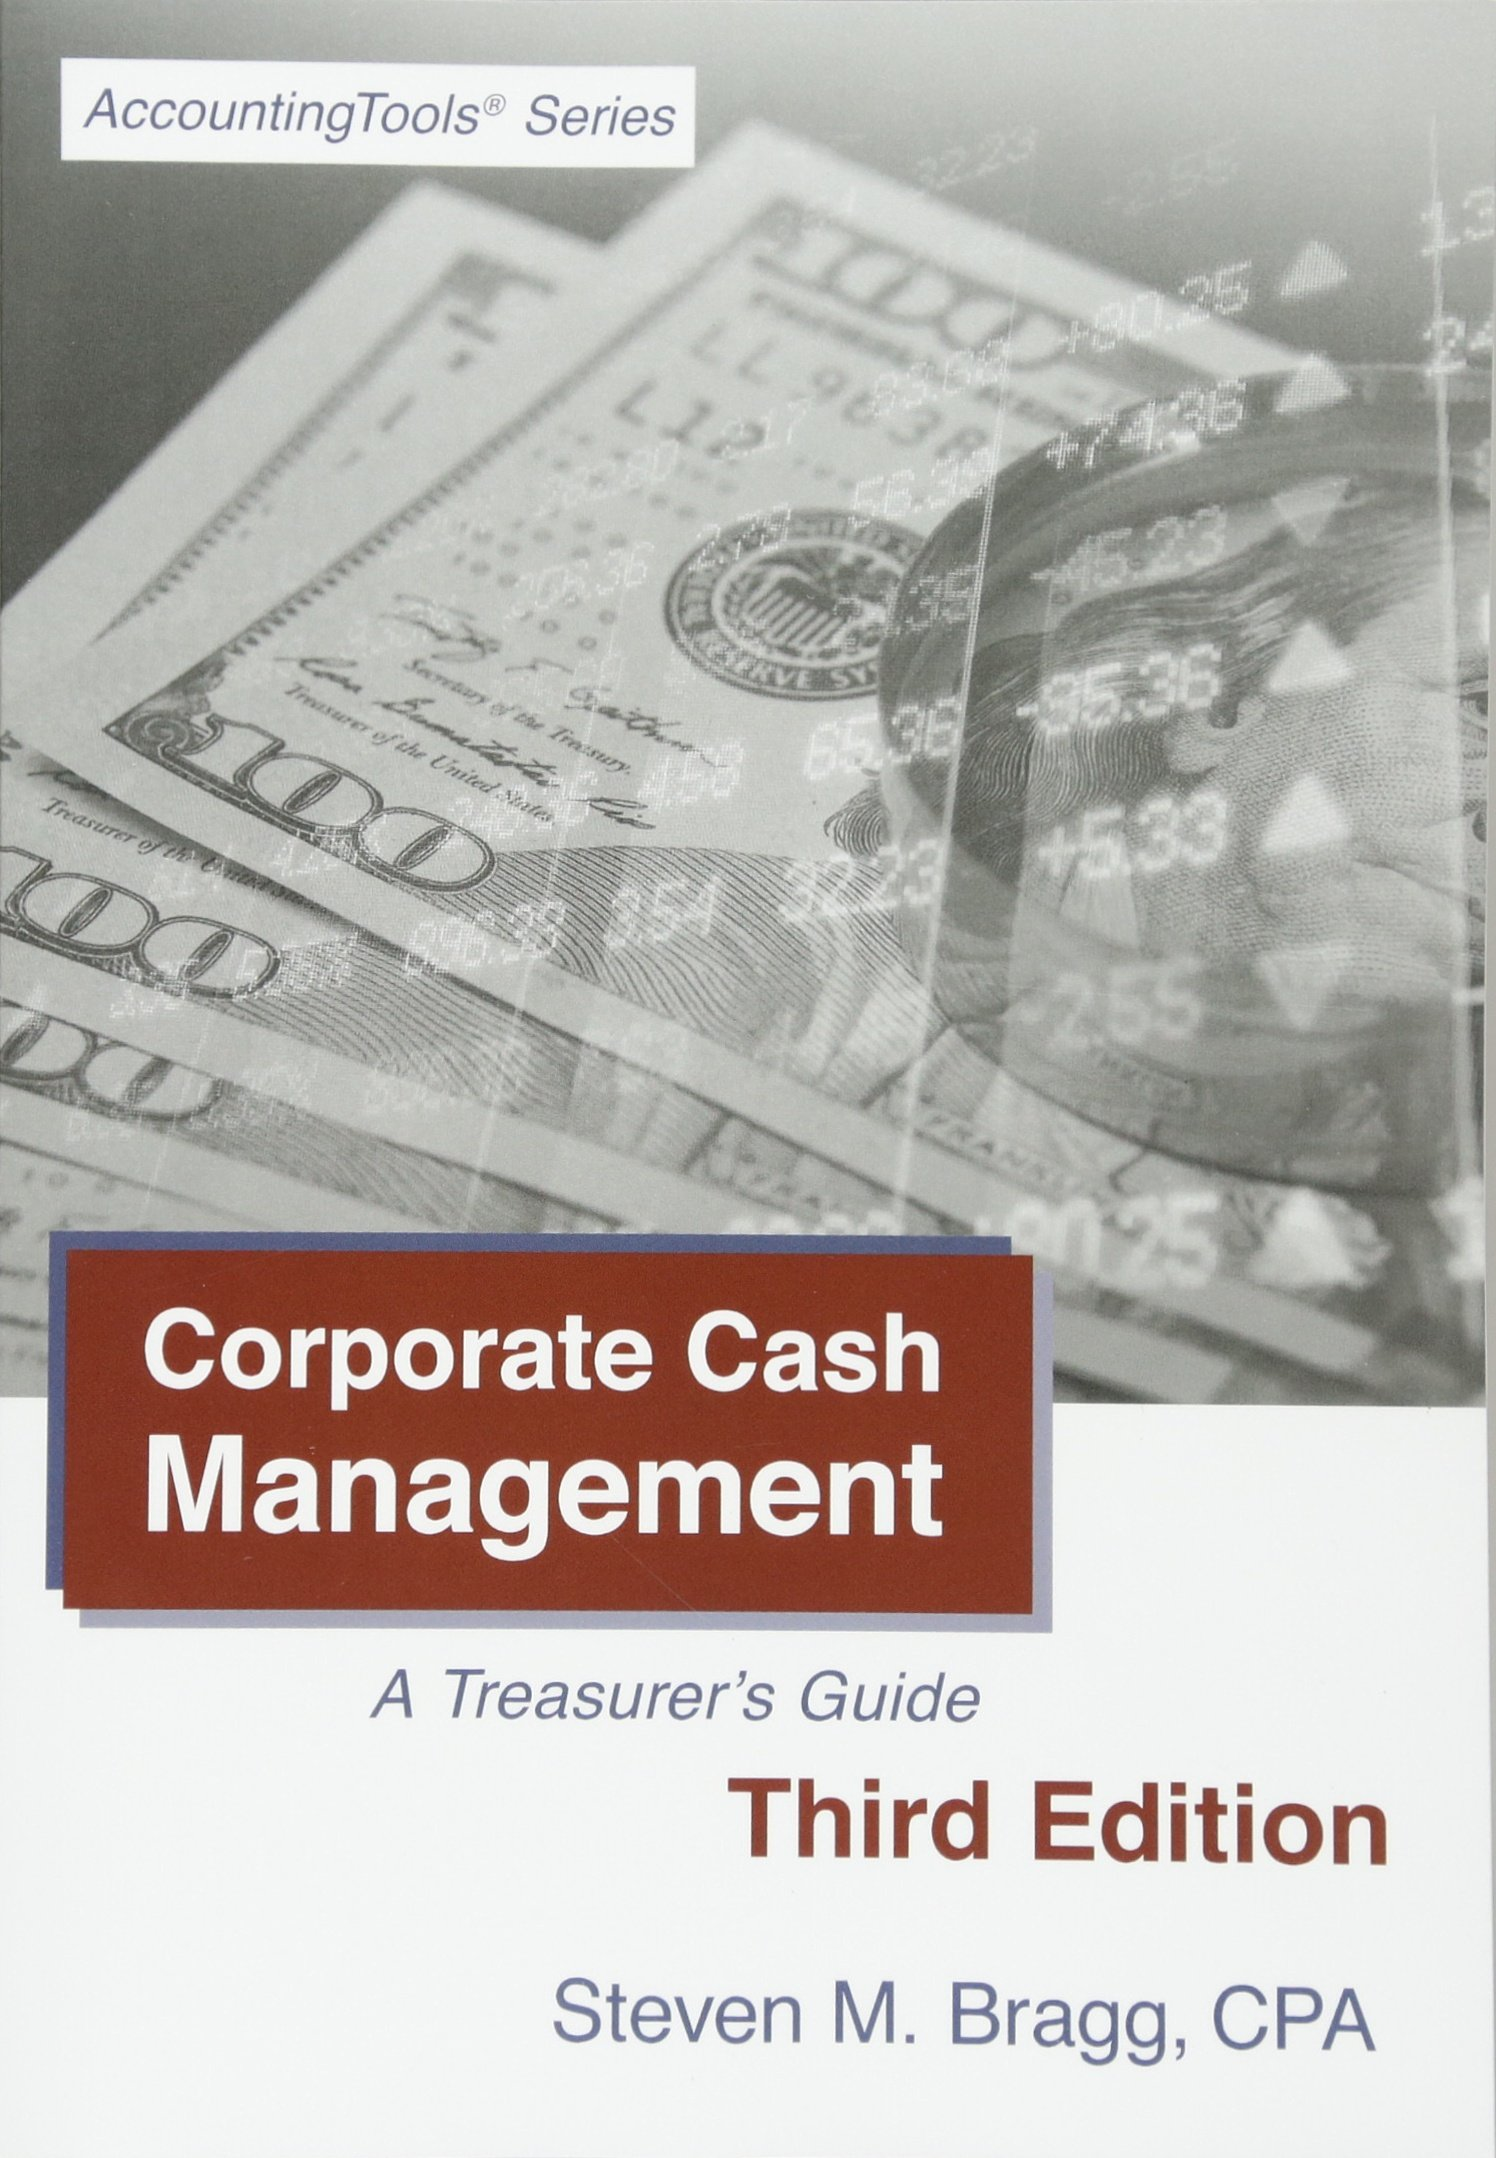 Corporate Cash Management: Third Edition: A Treasurer's Guide